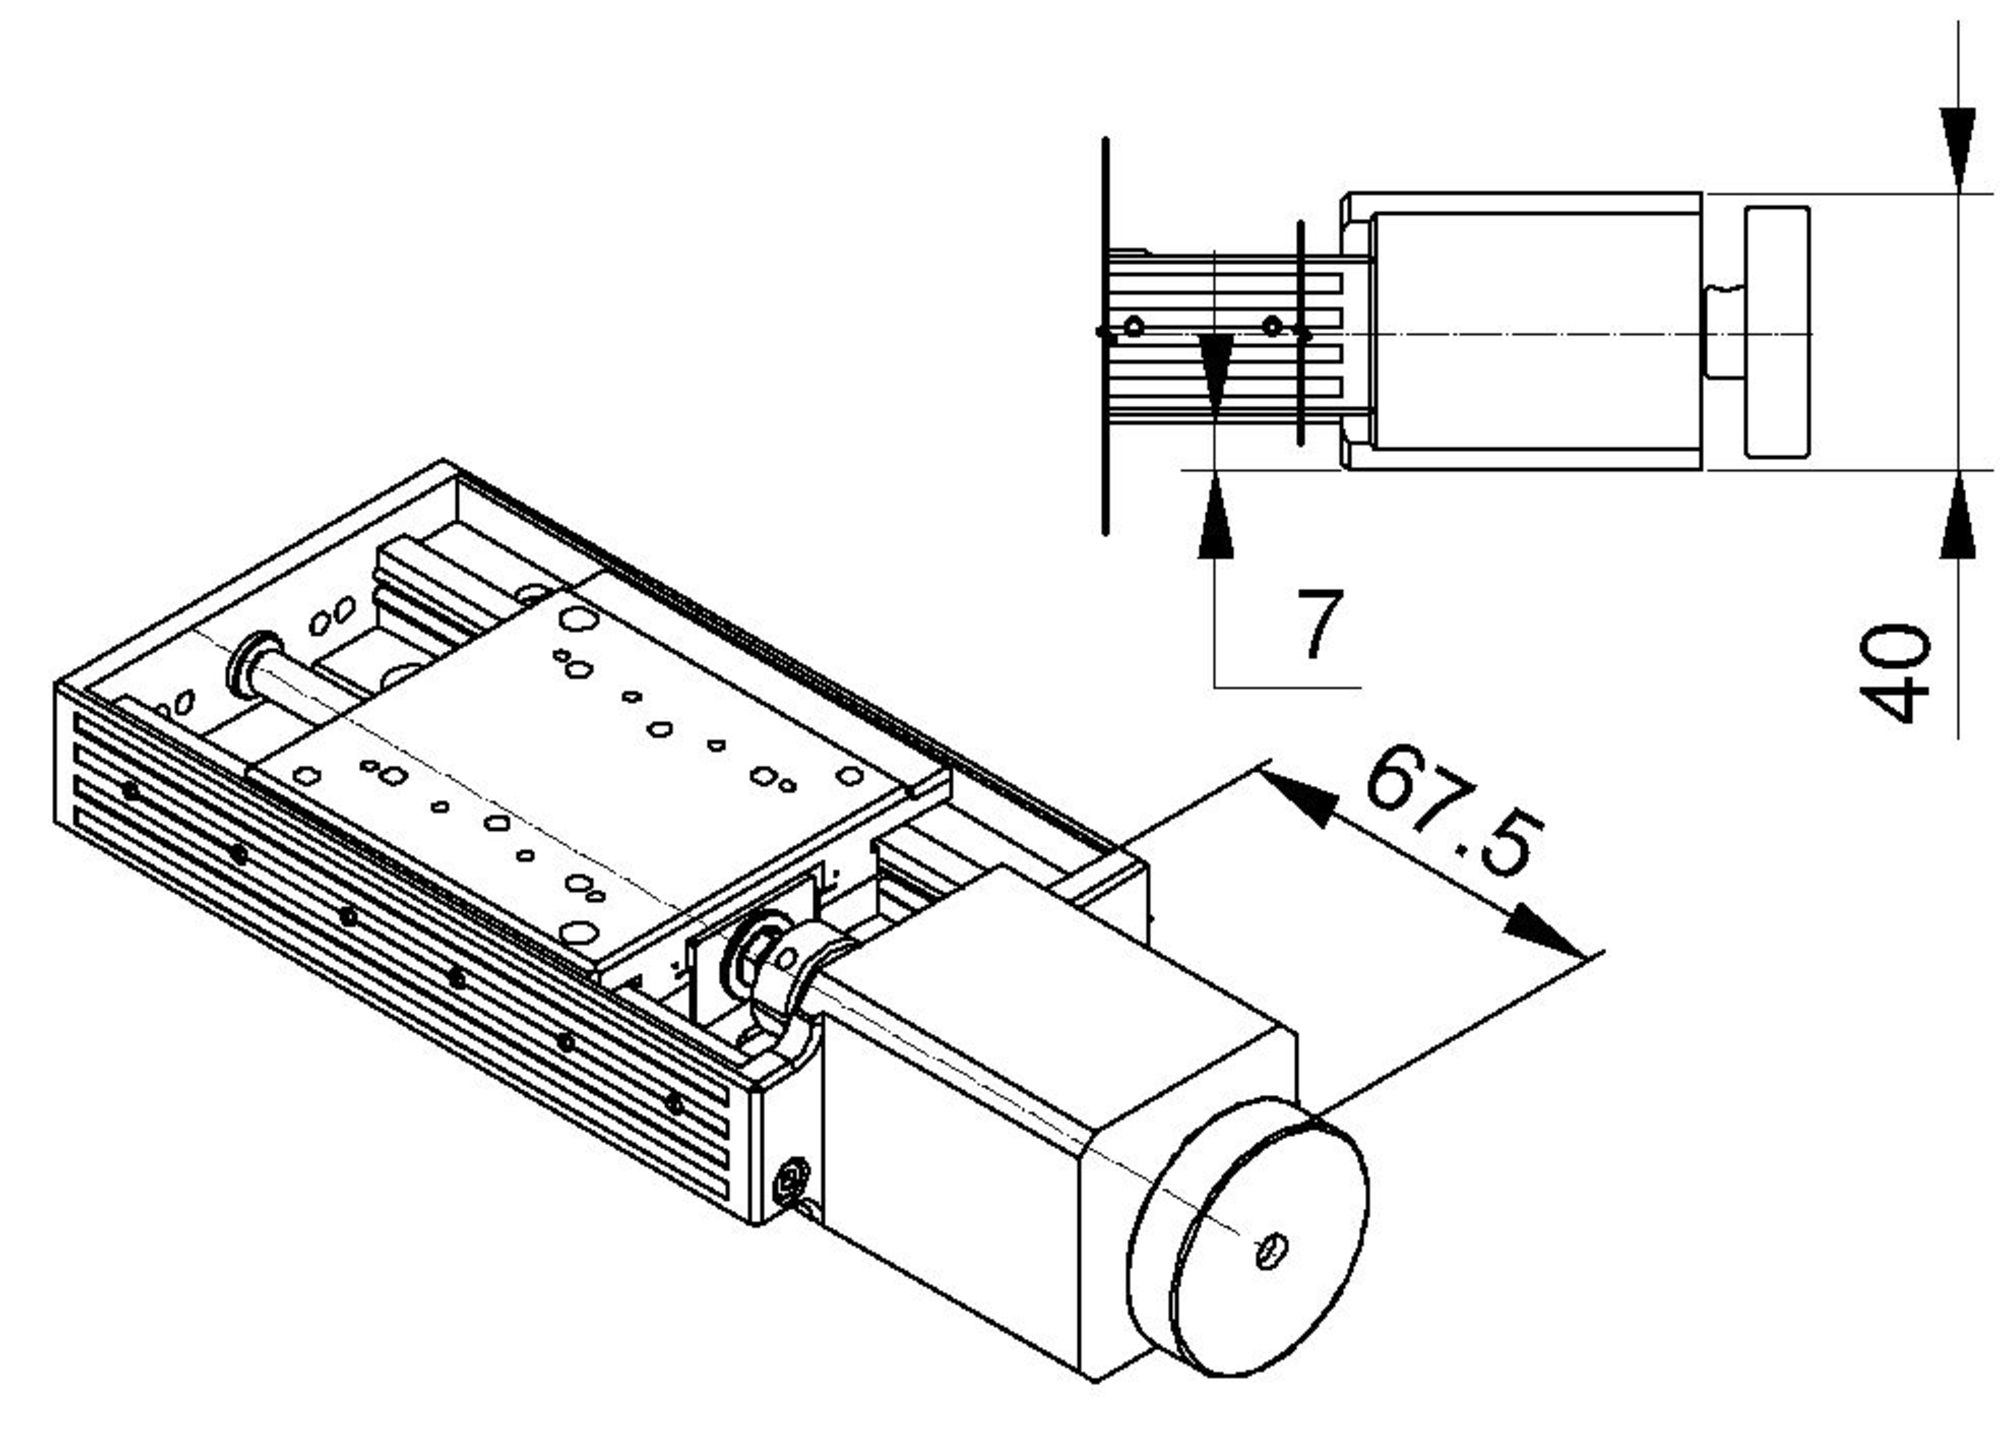 Vt 80 Linear Stage Construction Drawing Of Electronics Drawings And Precision Tools For Stepper Motor